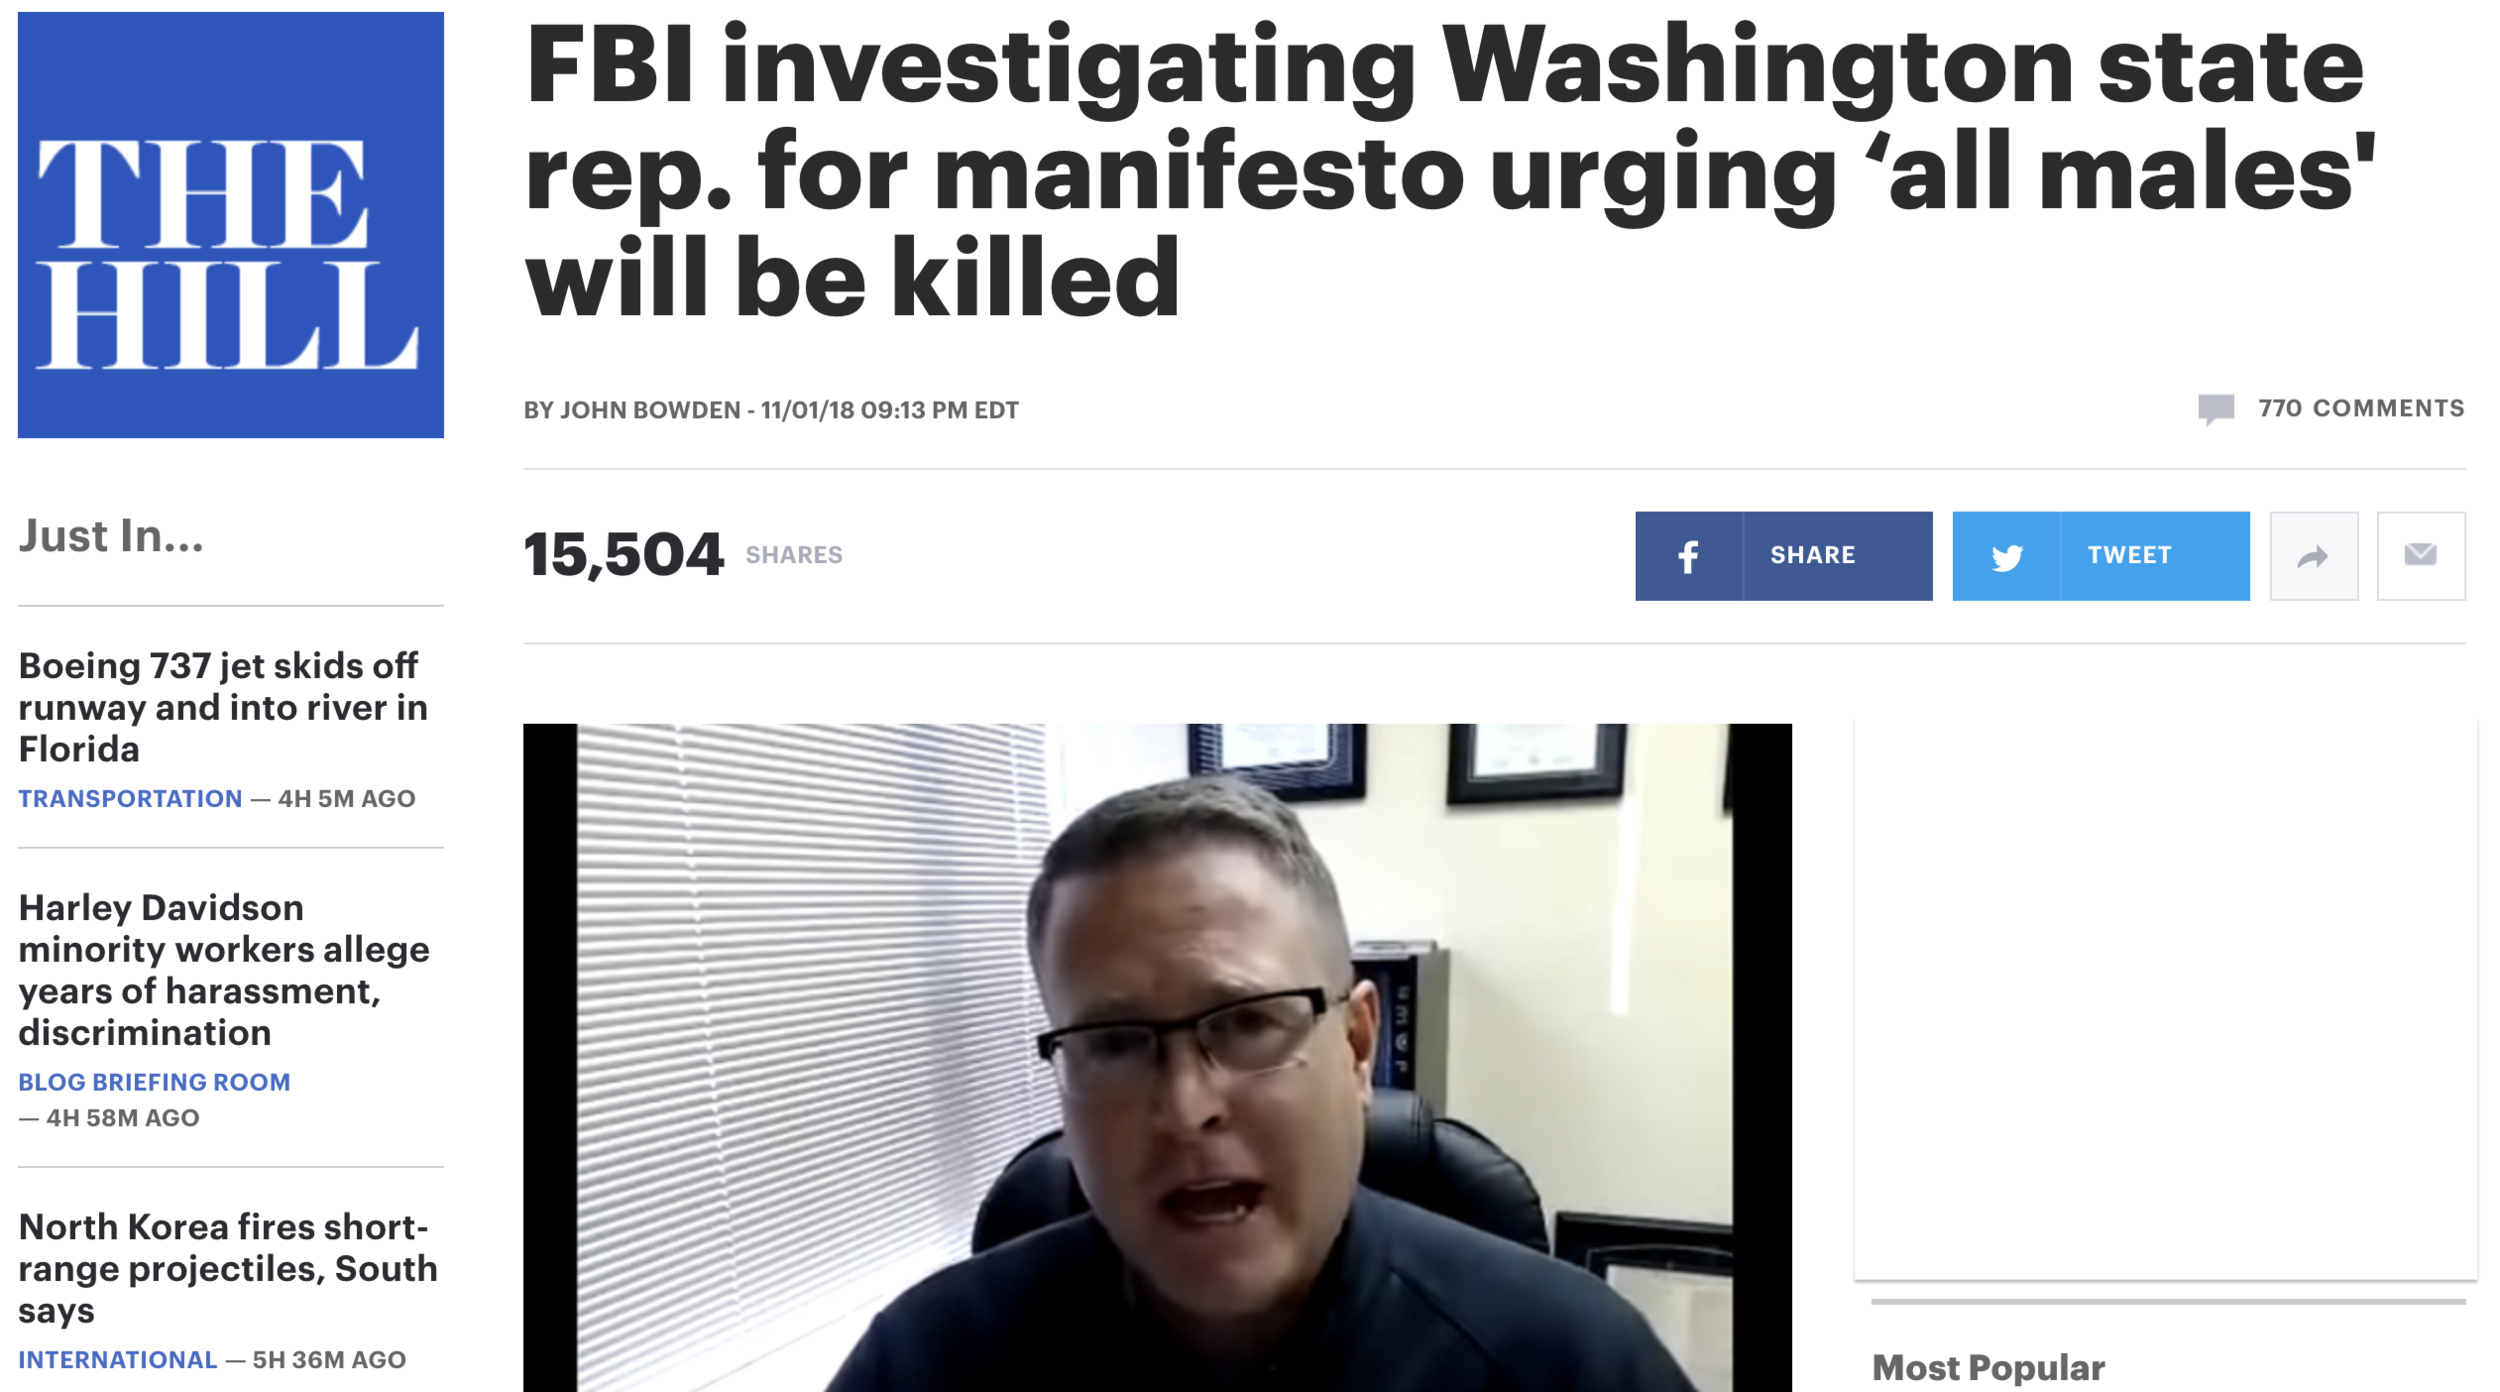 """The FBI says it's investigating a Washington state Republican who distributed a manifesto calling for ""war"" against enemies of the Christian religion.  The document, a  four-page explanation  of how to establish Christian law through armed struggle, calls for the end of same-sex marriage, abortion, and the death of all non-Christian males in the U.S. if religious law is not upheld.""   CLICK HERE FOR FULL ARTICLE"